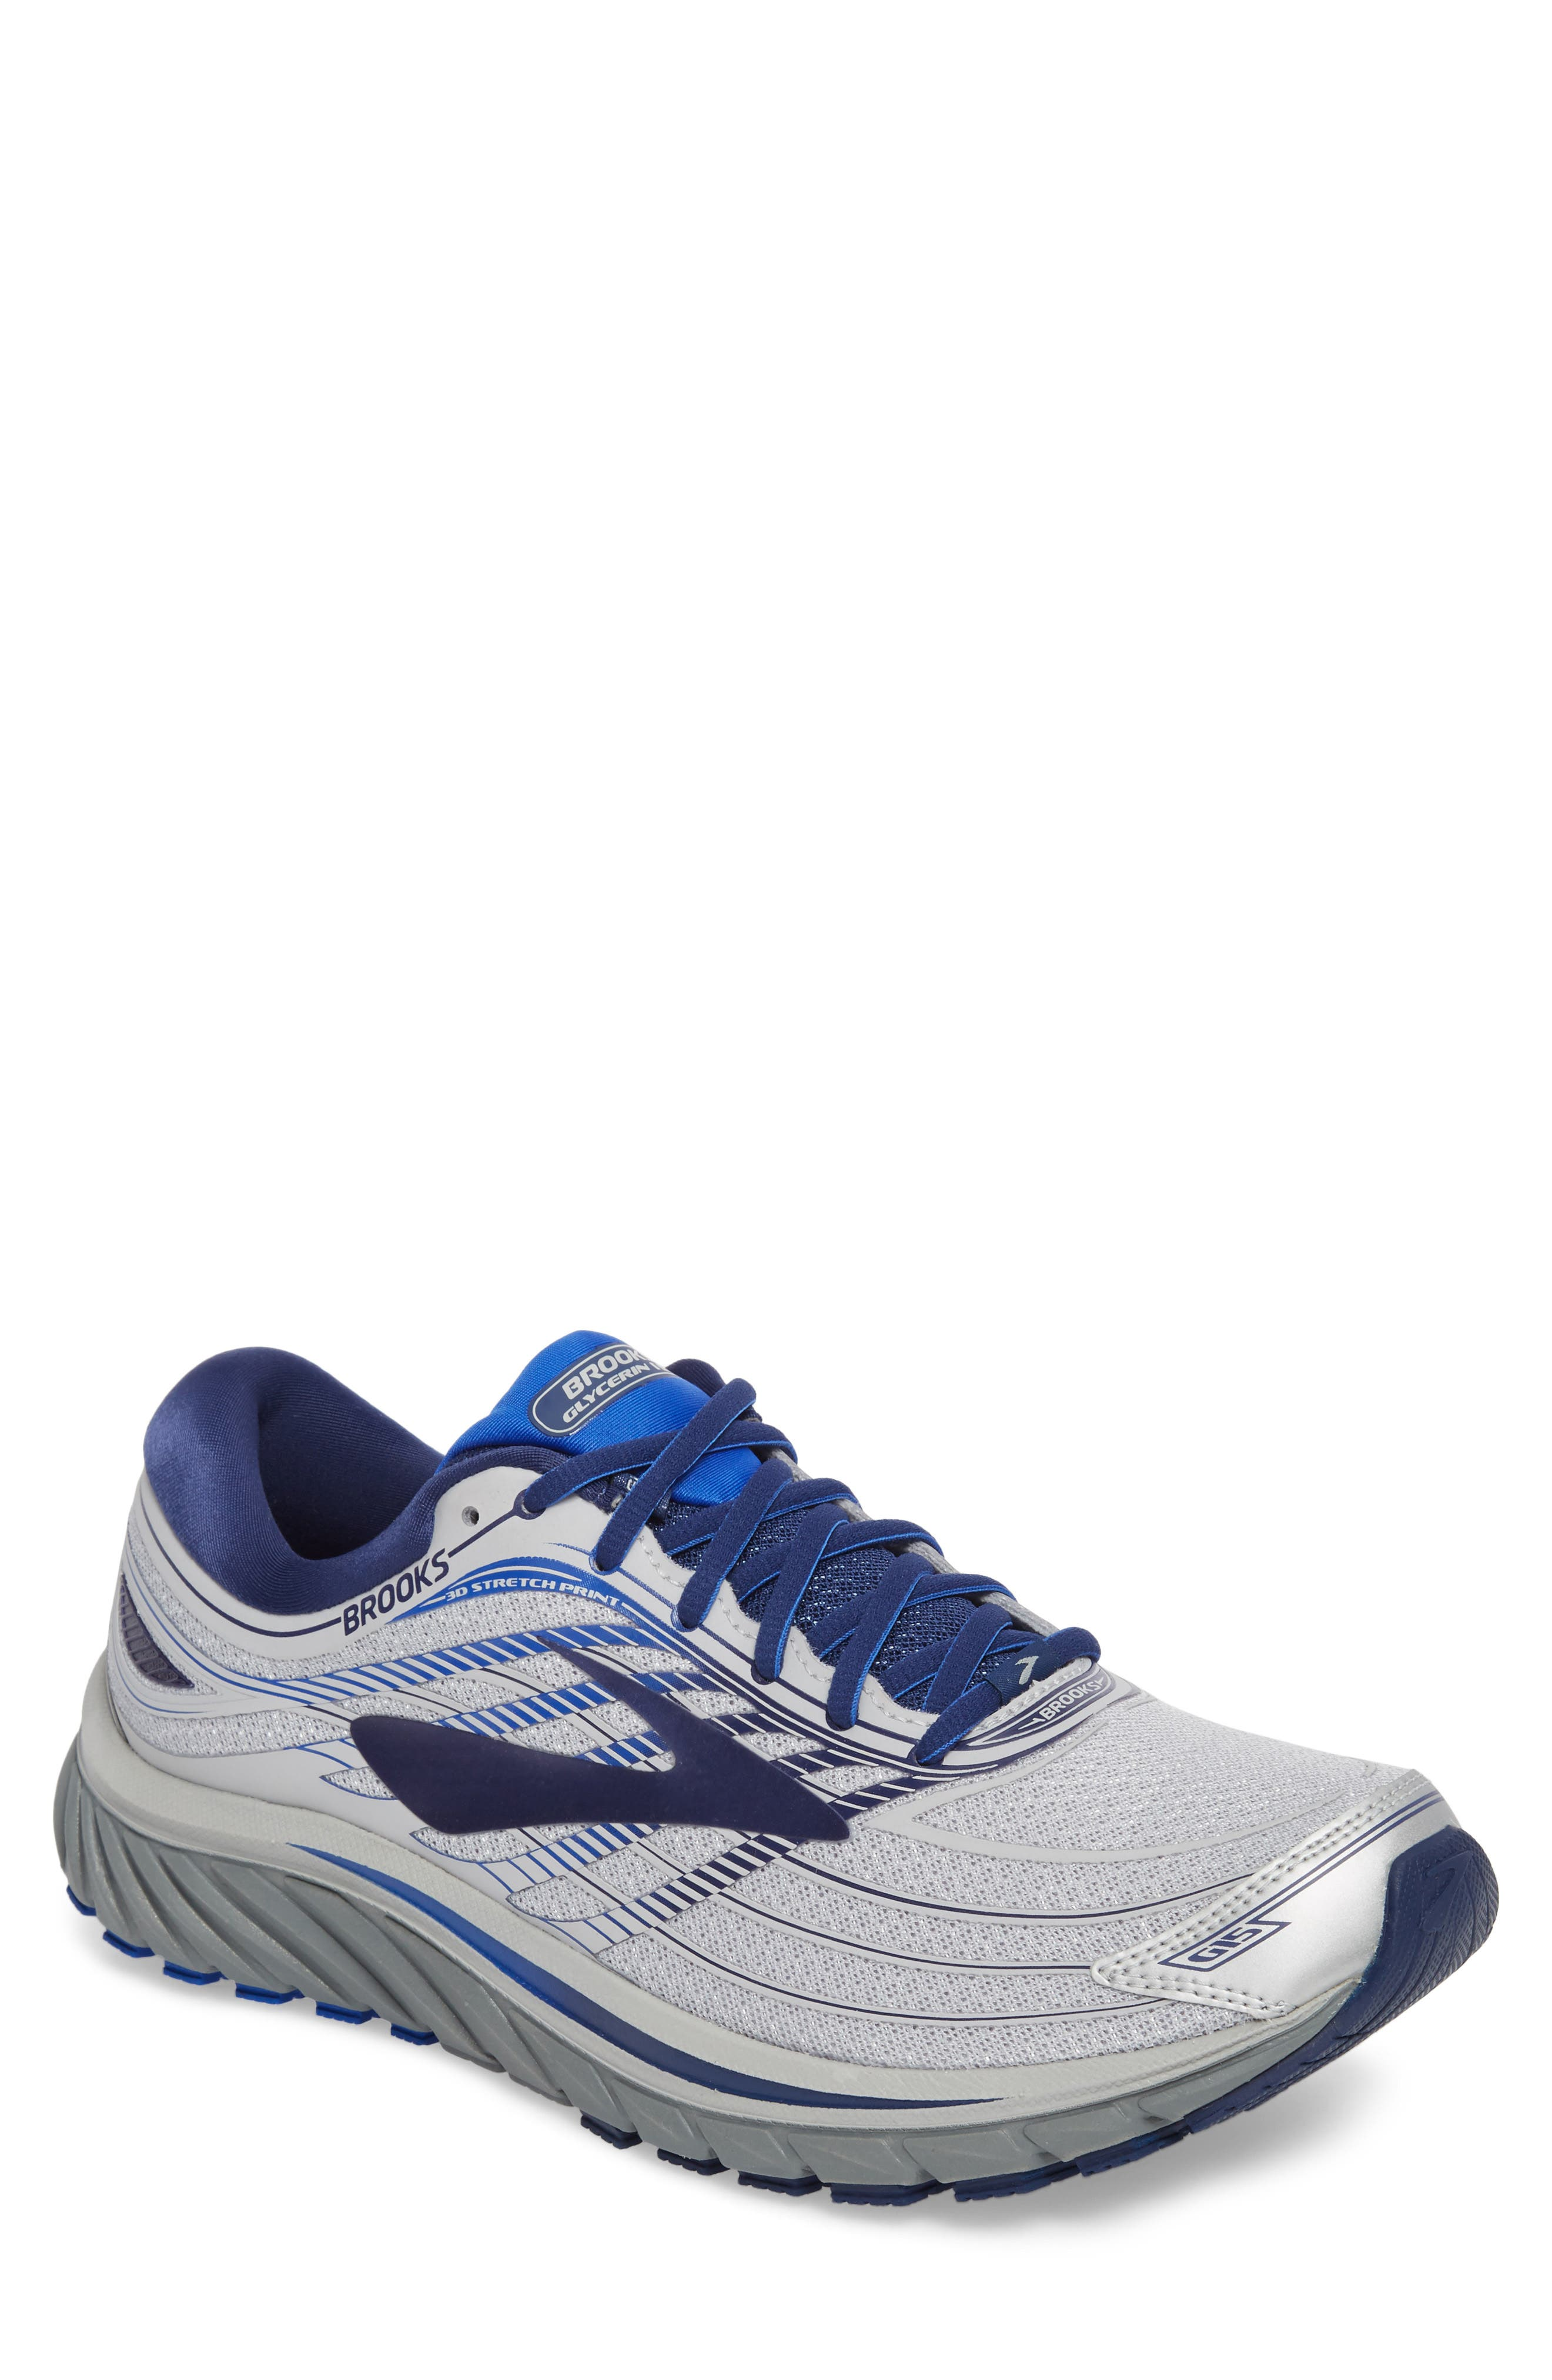 Glycerin 15 Running Shoe,                         Main,                         color, 036